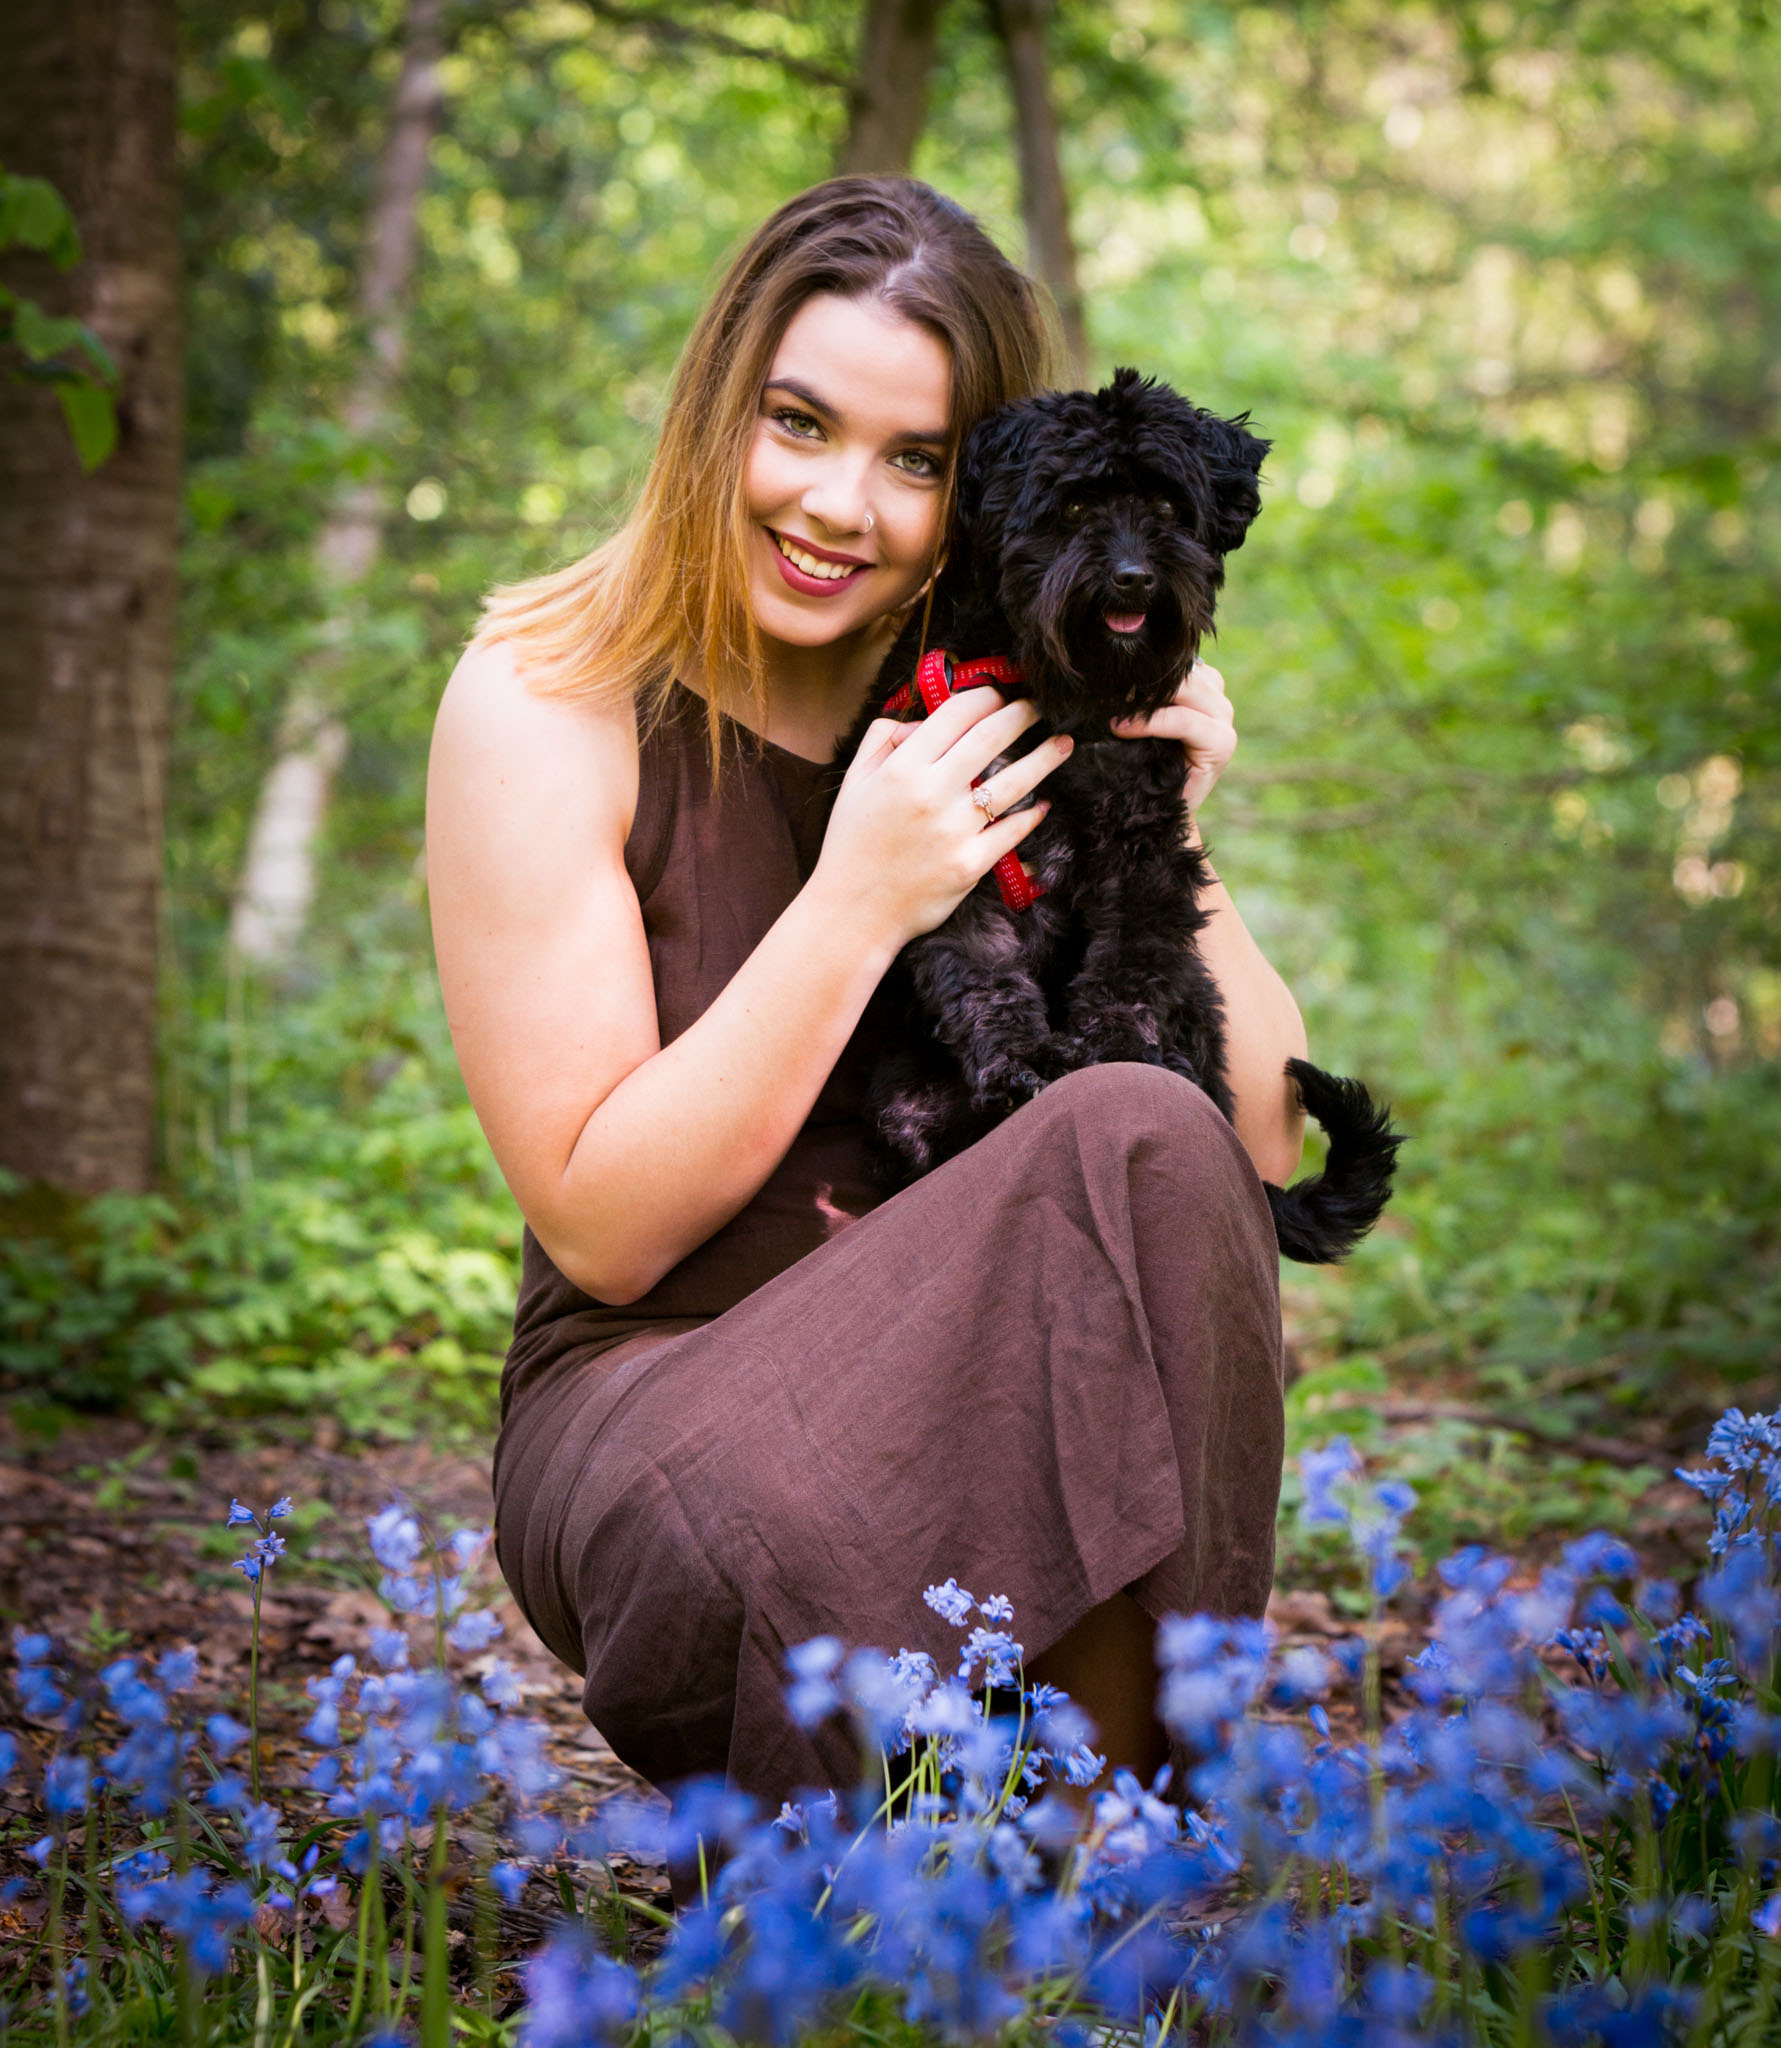 A portrait of a young dog and her owner in Lymm, Cheshire